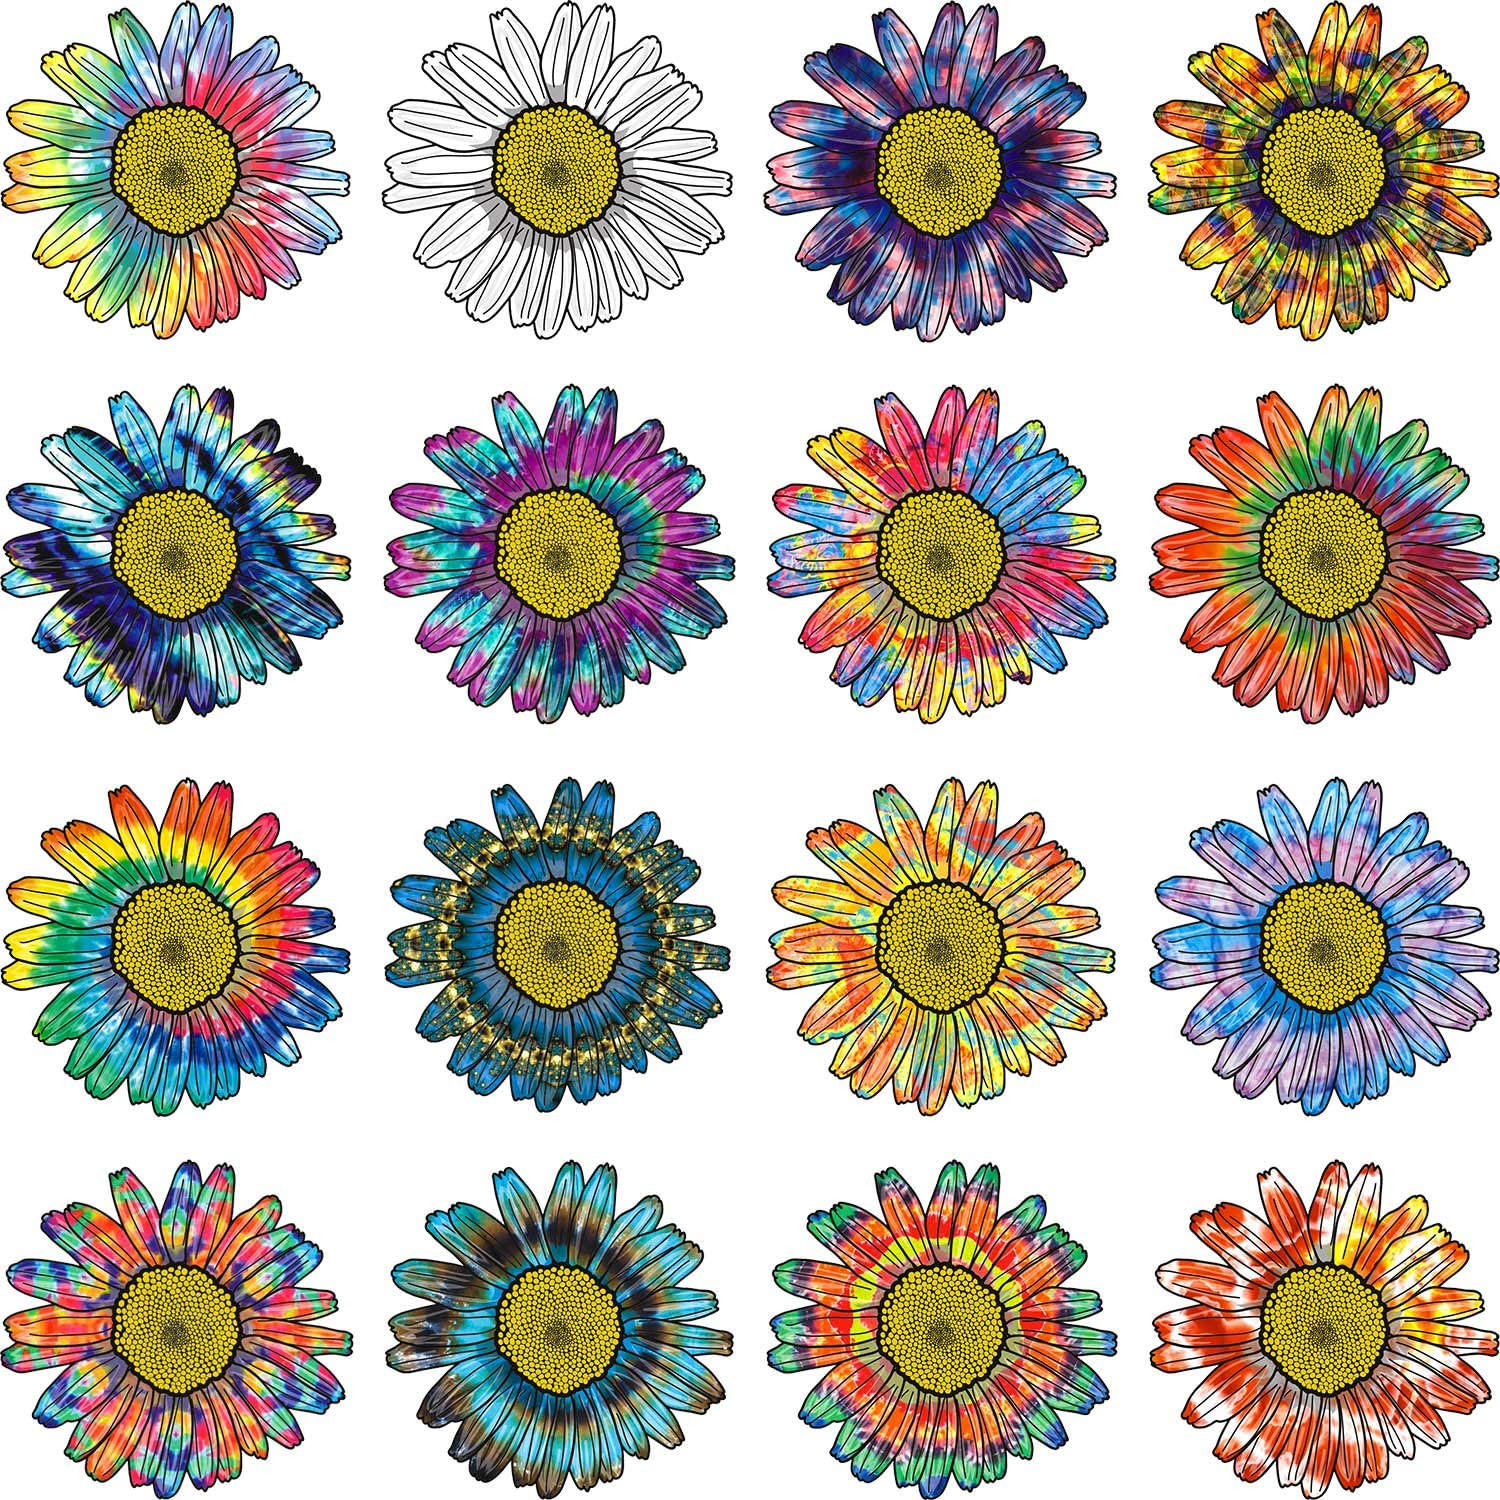 16 Pieces Rainbow Tie Dye Stickers Daisy Flower Sticker Waterproof Car Stickers Decals for Laptops, Skateboards, Luggage, Cars, Bicycles, Books